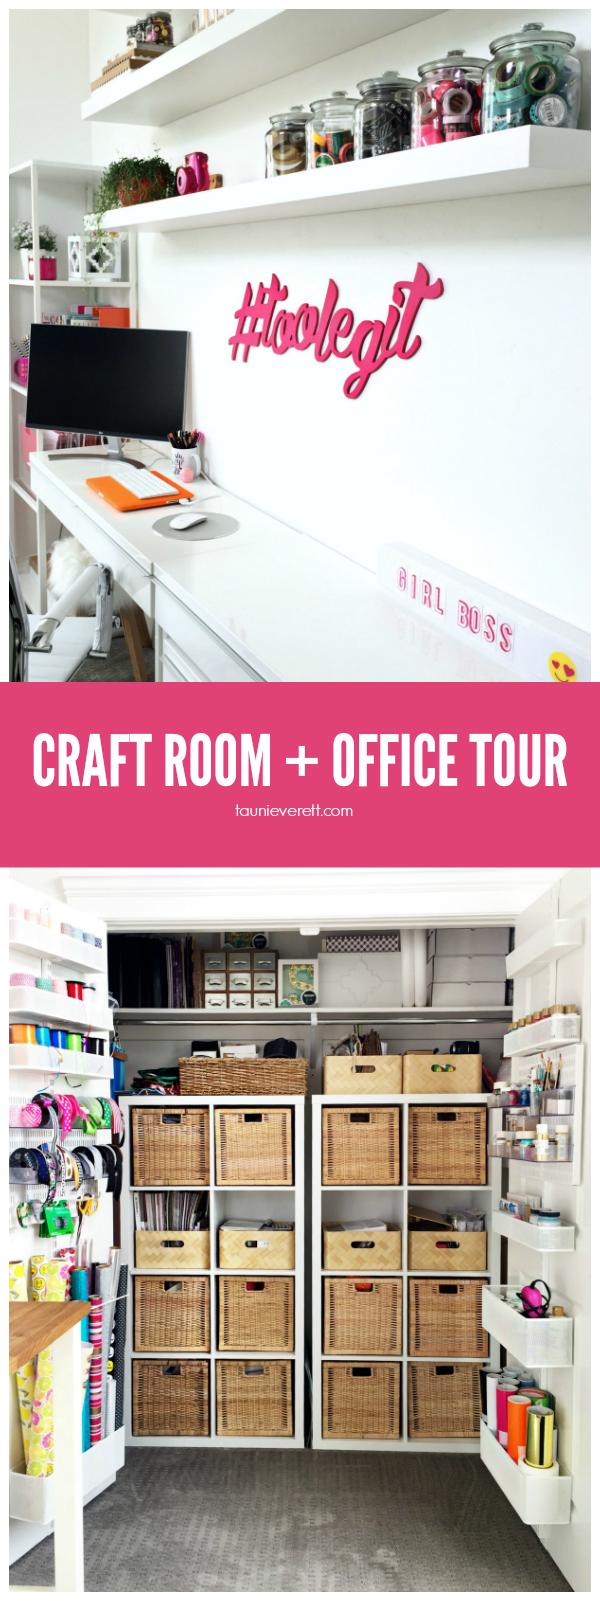 Scouring the web for great craft room and home office ideas? We've got you covered with a great home office and craft room tour.